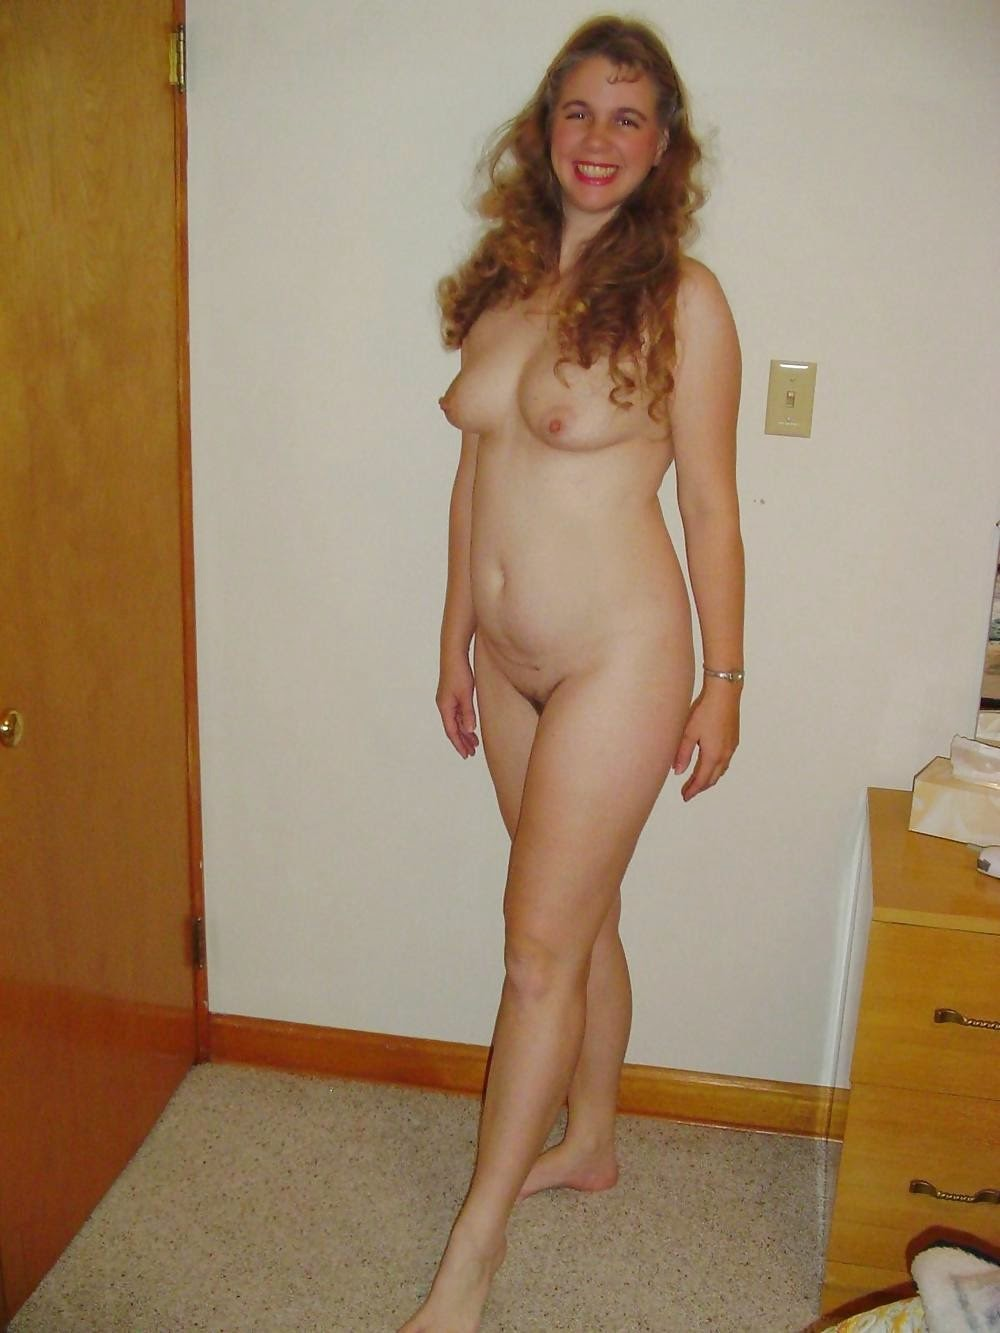 Hairy women naked for first time